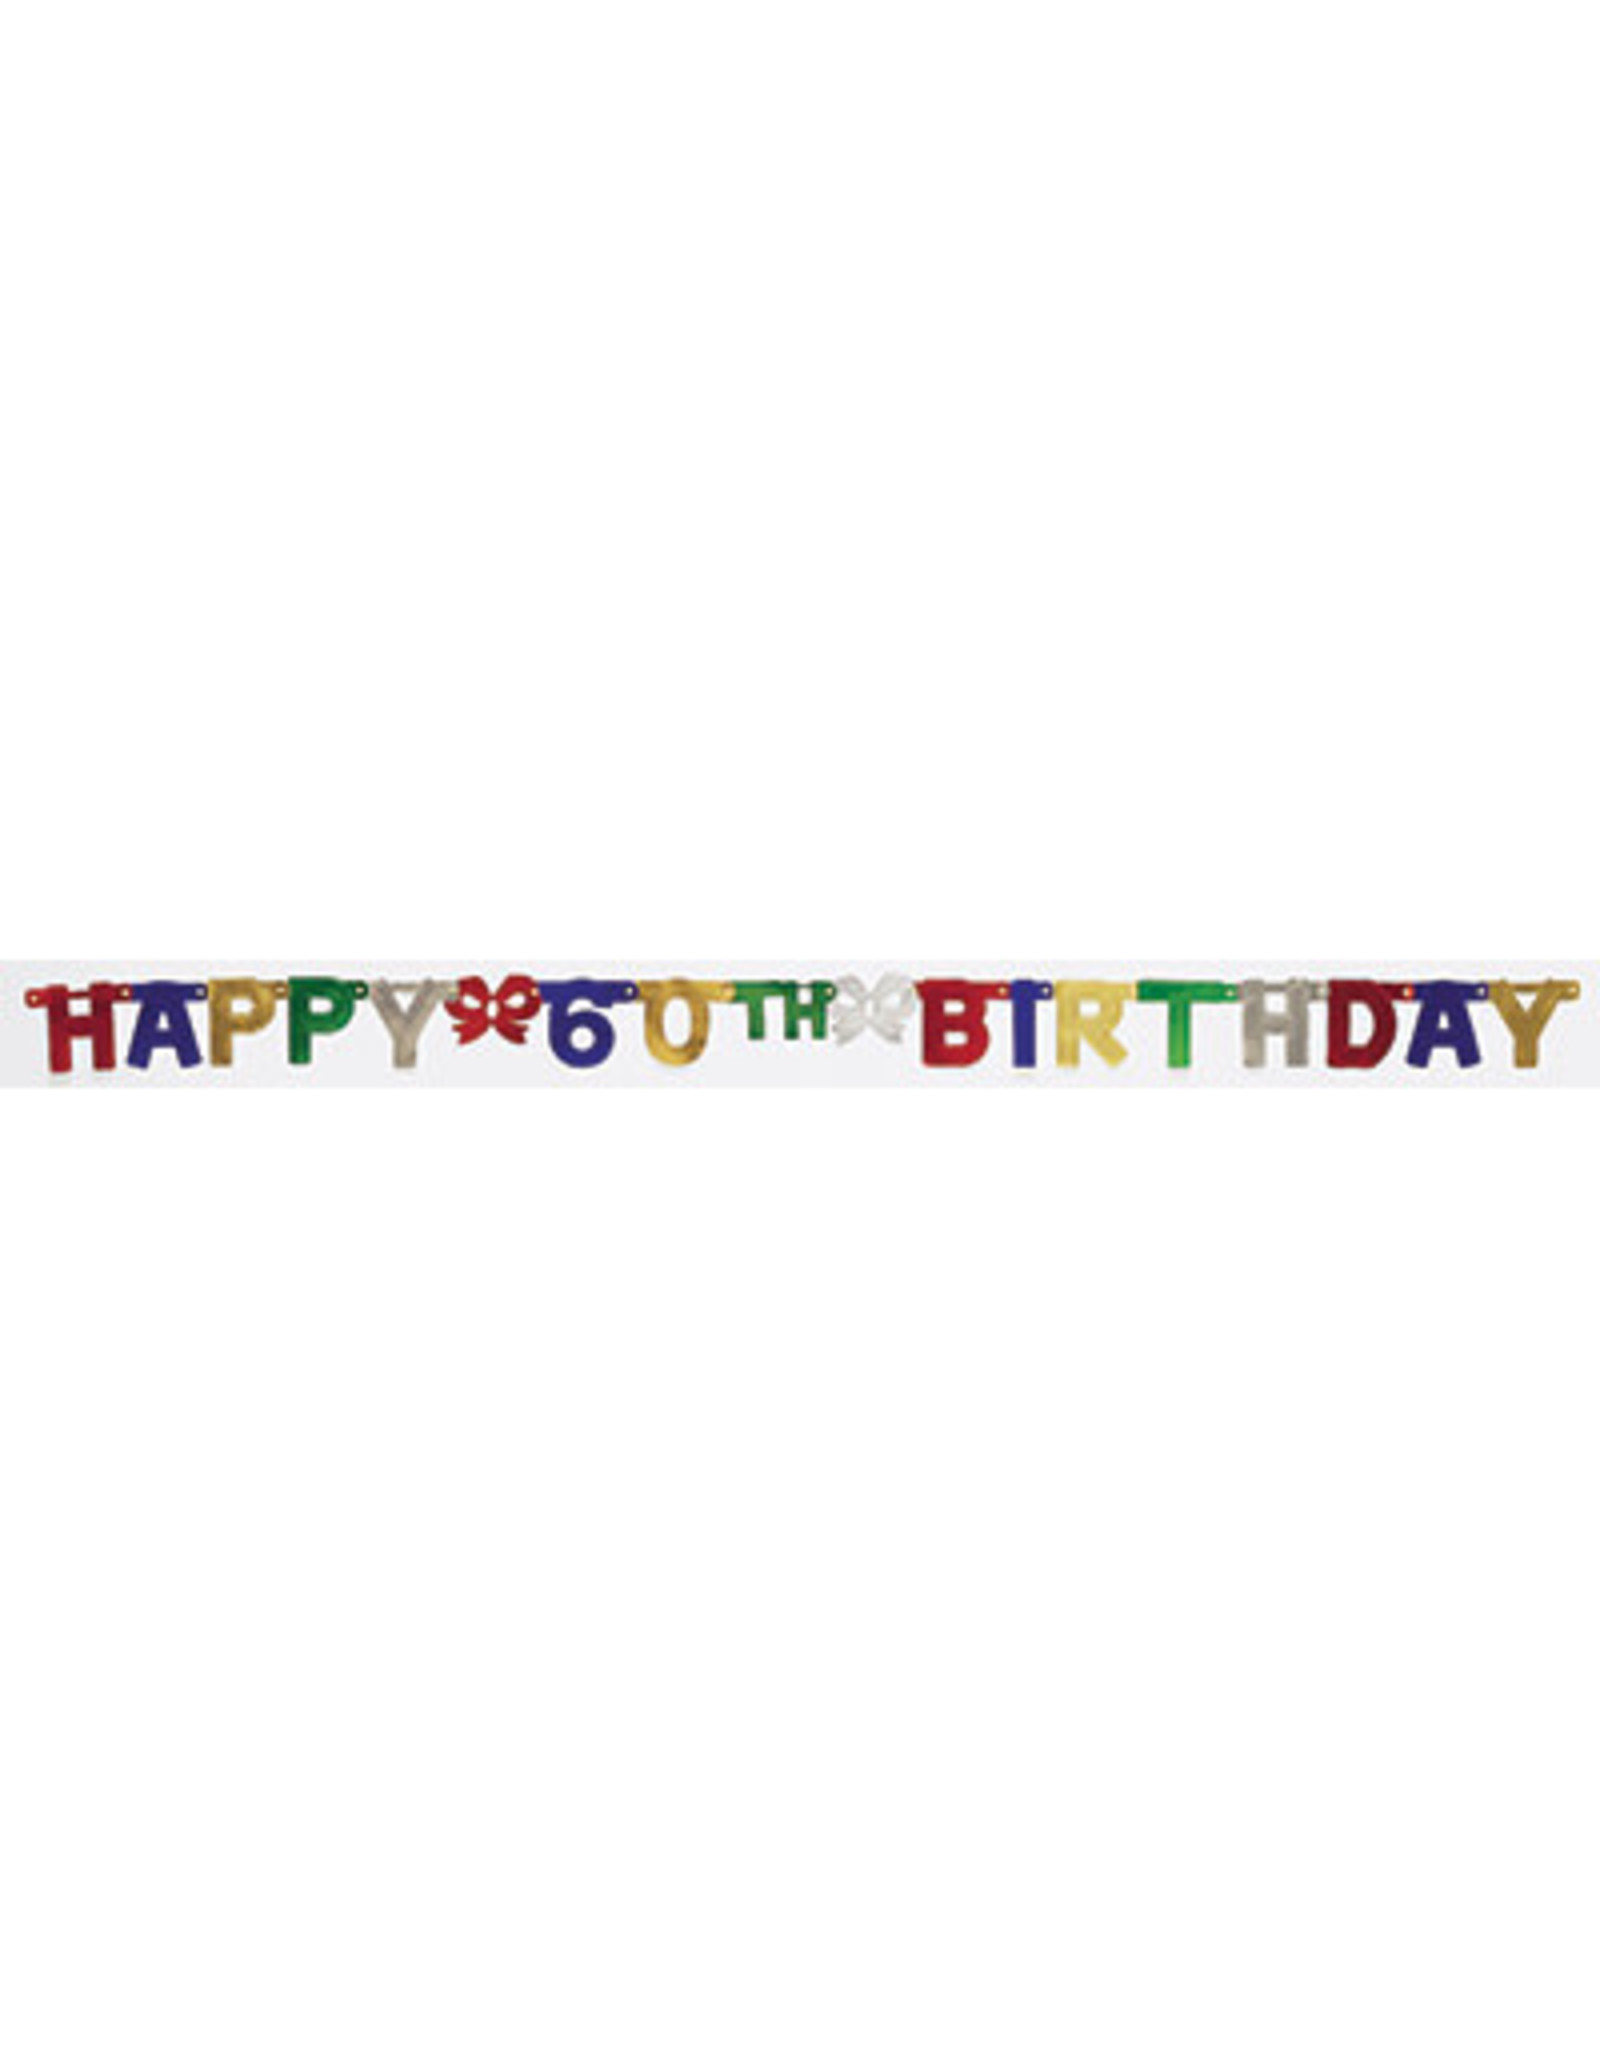 creative converting 60th Jointed Birthday Banner - 6.5ft.